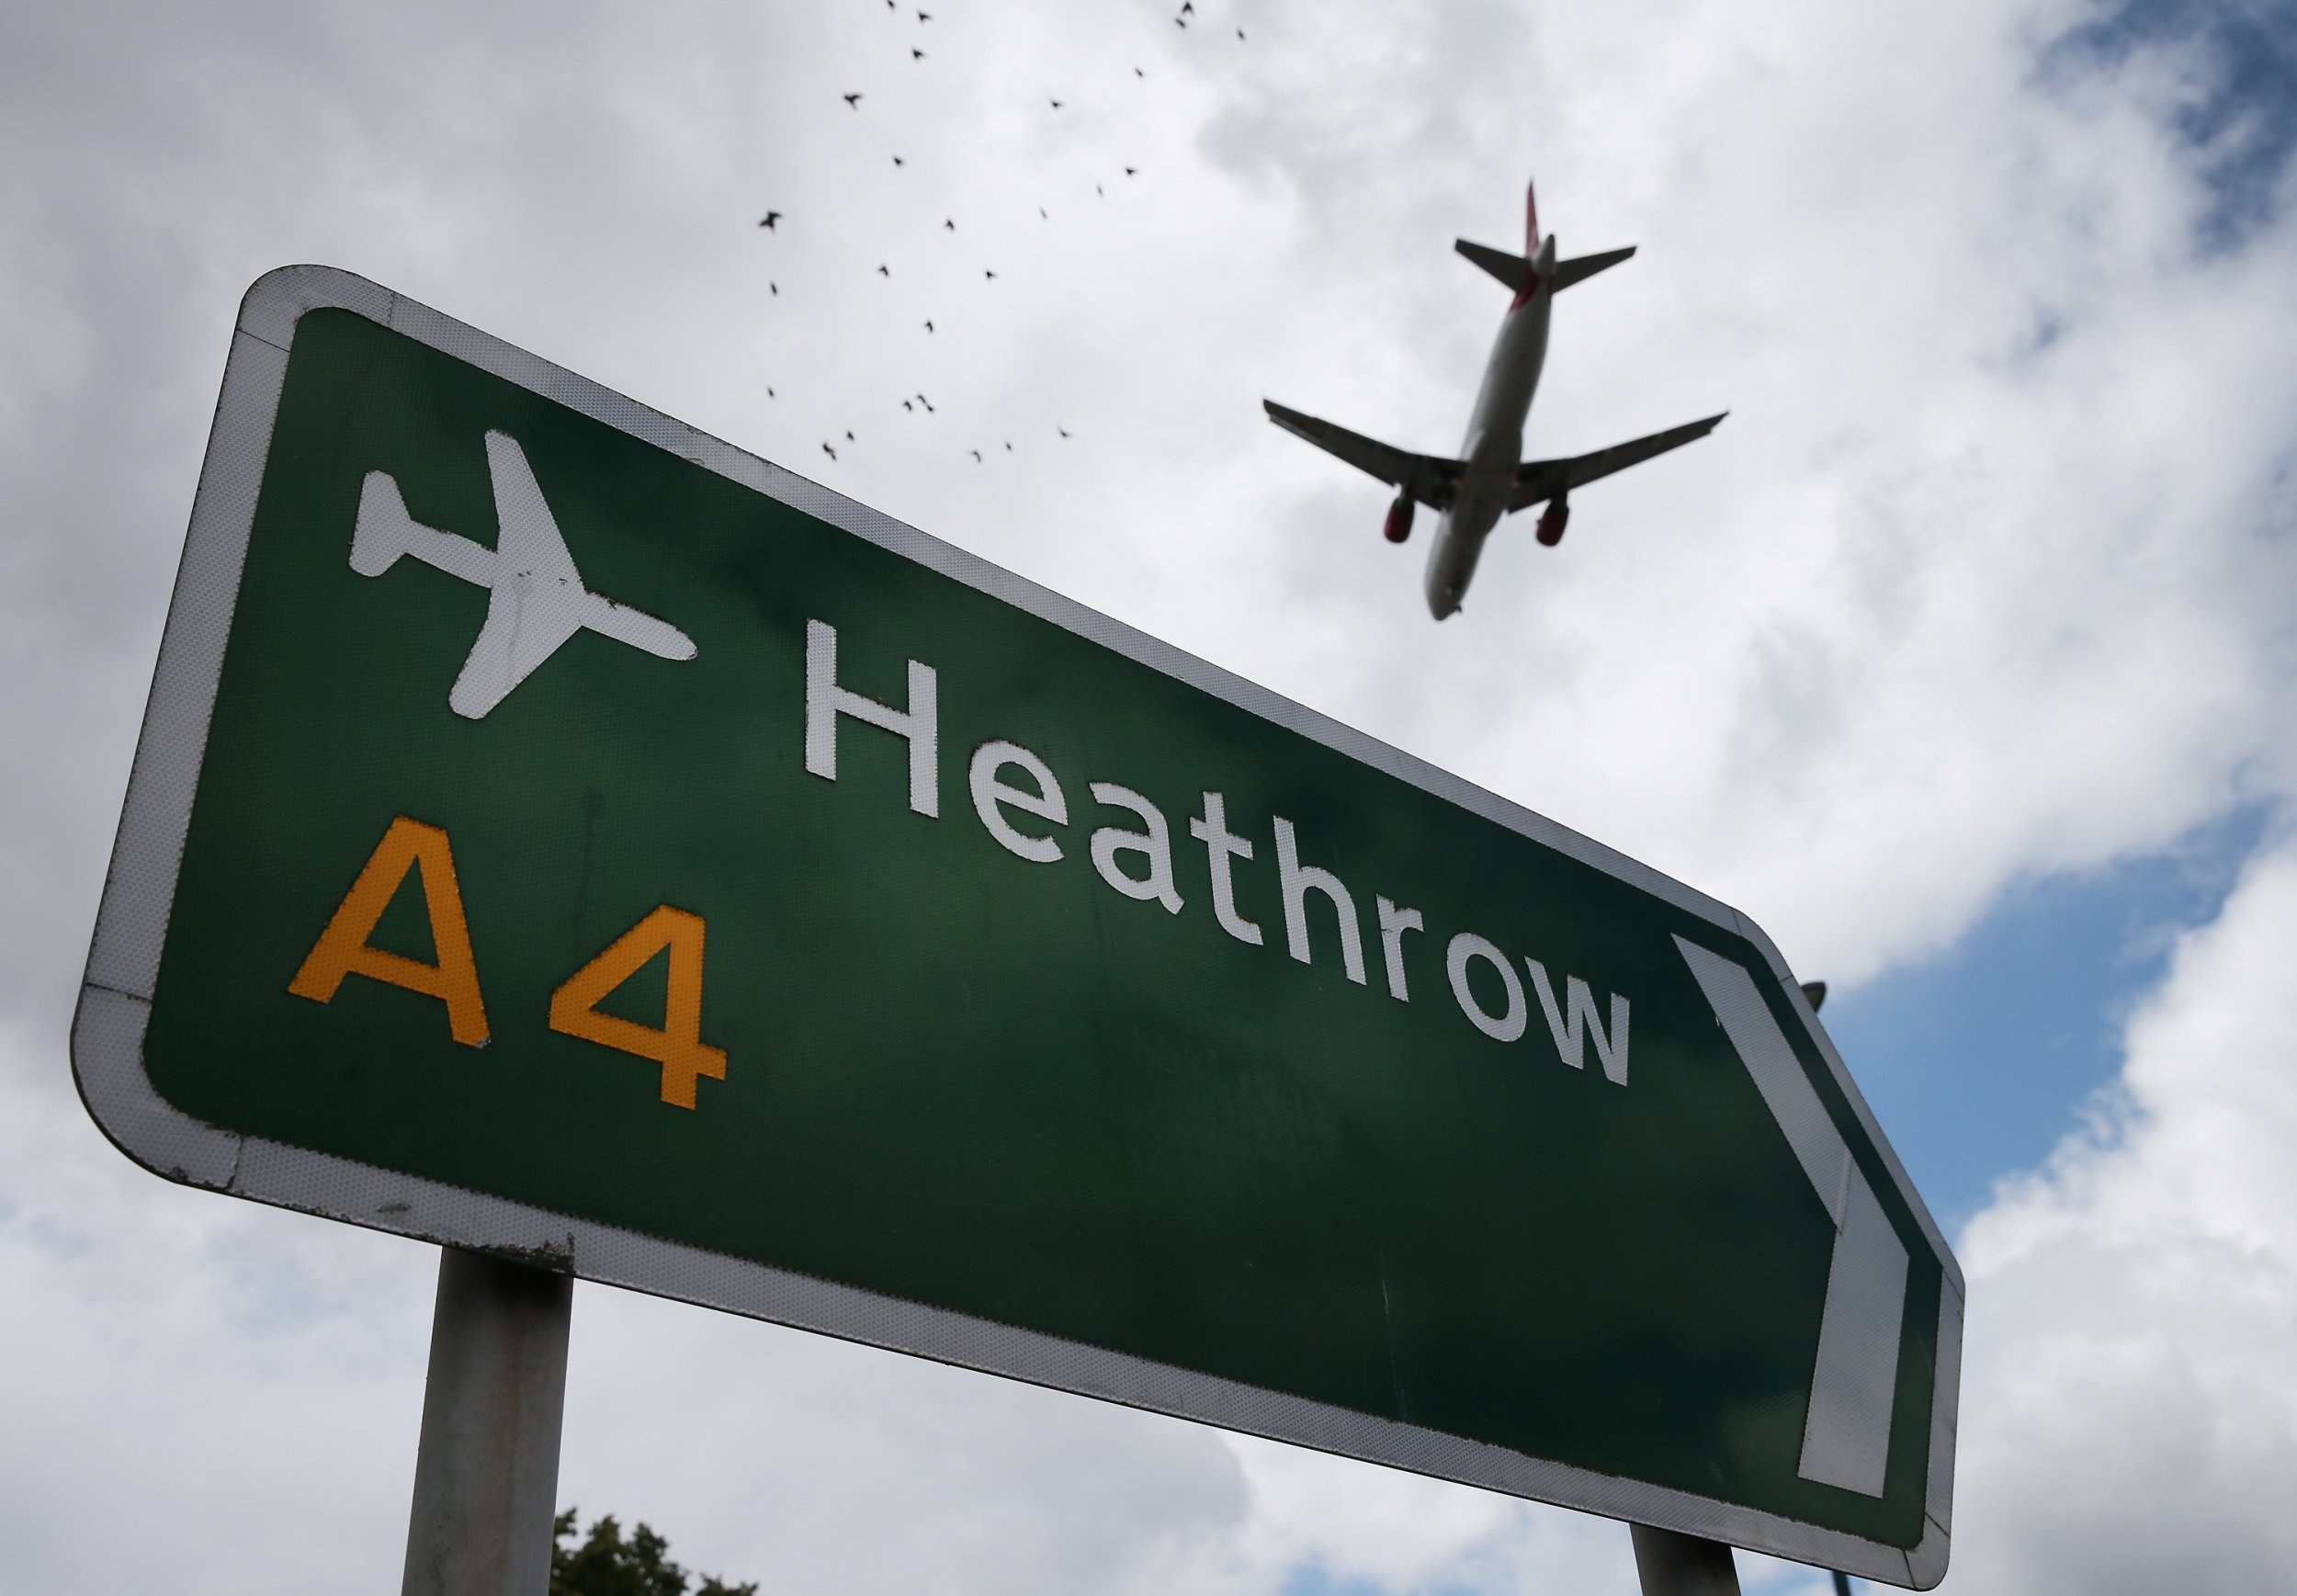 A plane coming in to land at Heathrow